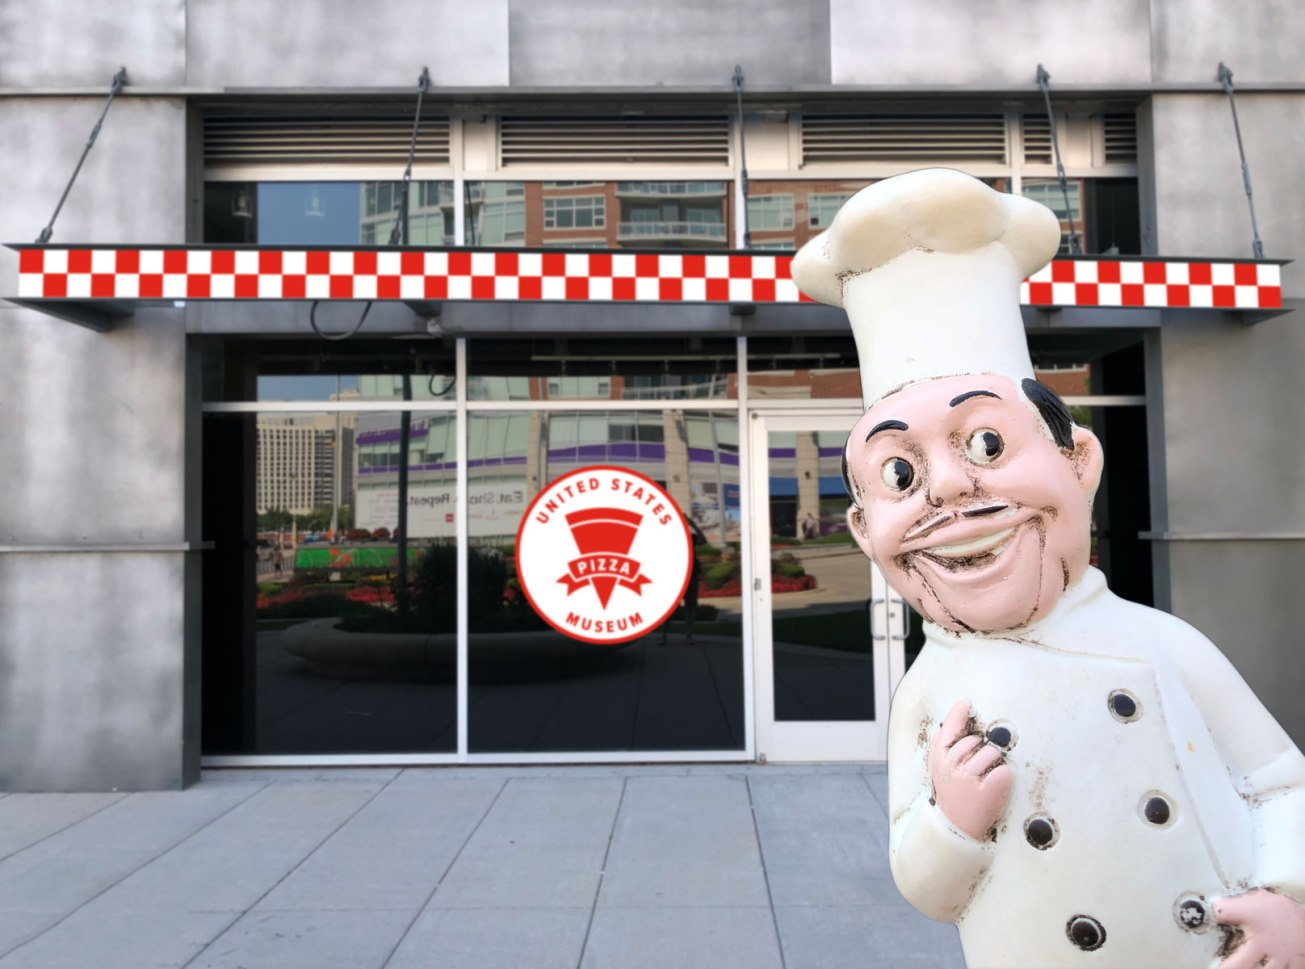 Pizza is controversial at the U.S. Pizza Museum, not because of the institution doesn't serve slices, but because it's located in Chicago.